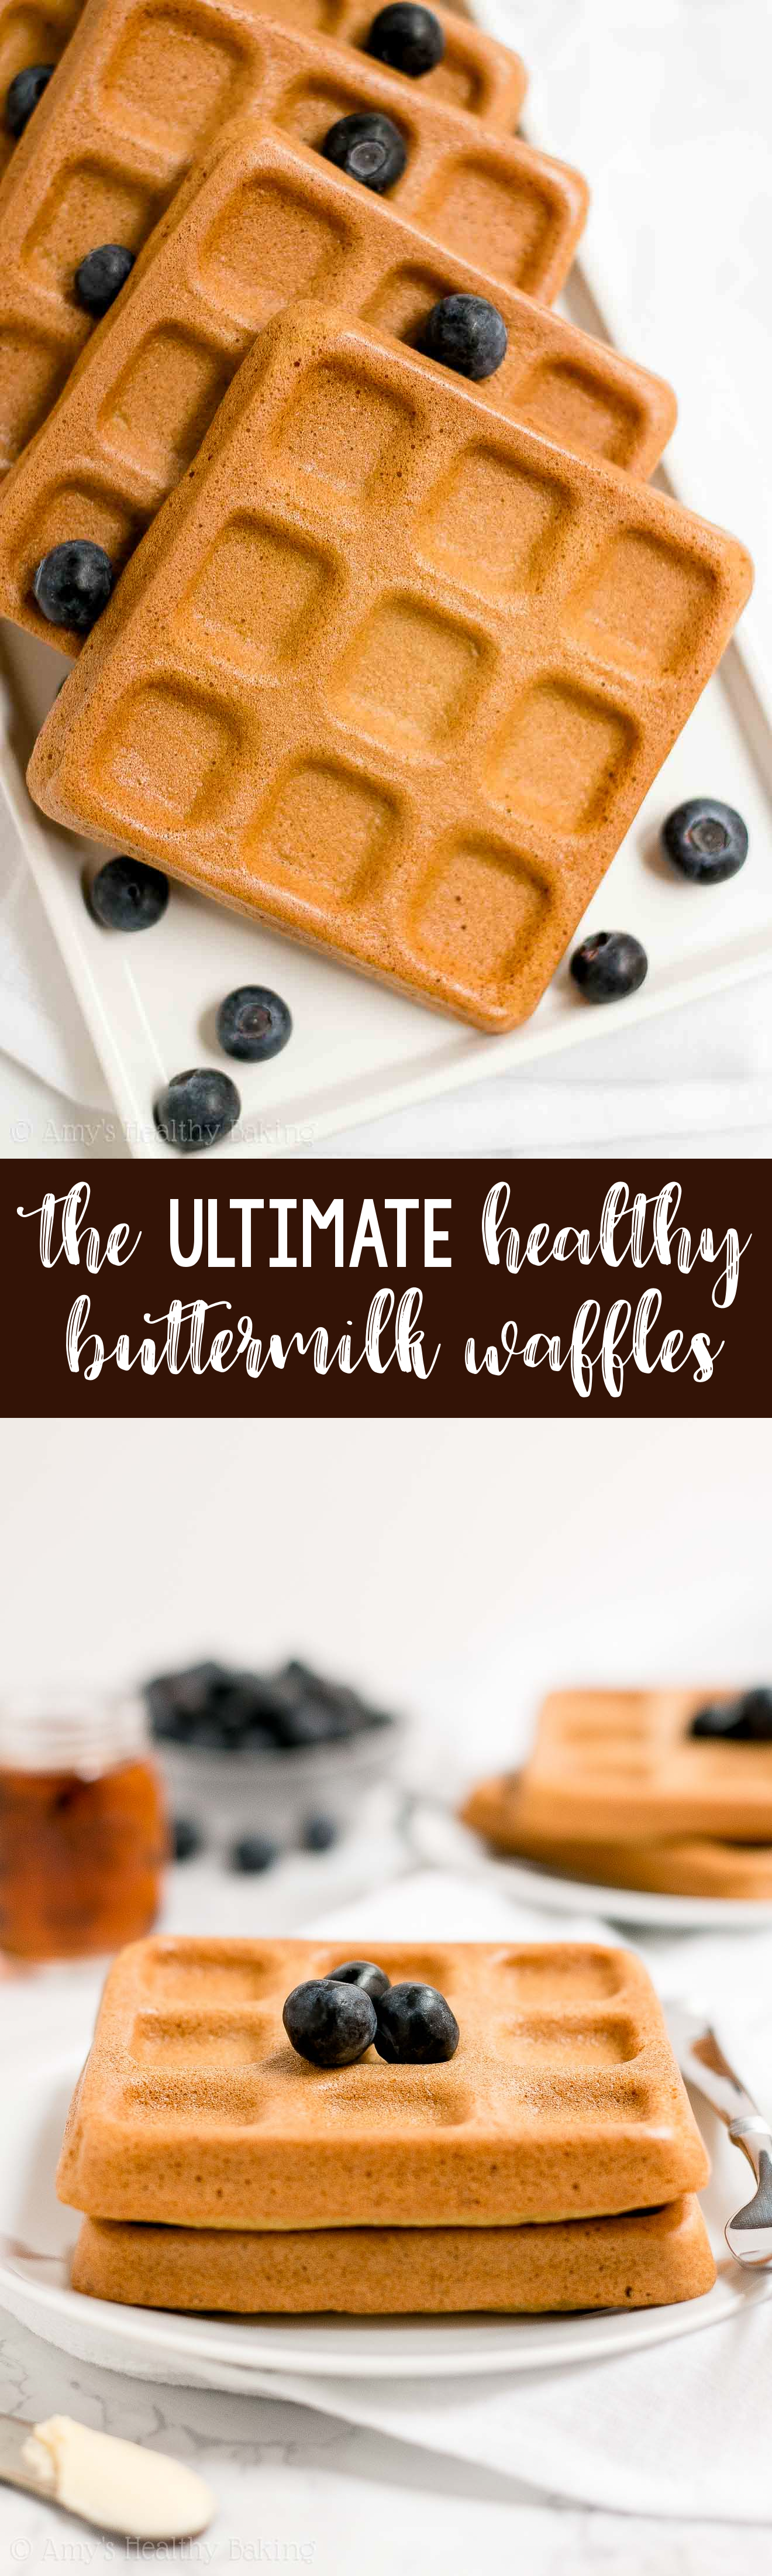 BEST EVER Healthy Baked Buttermilk Waffles that are crispy and fluffy